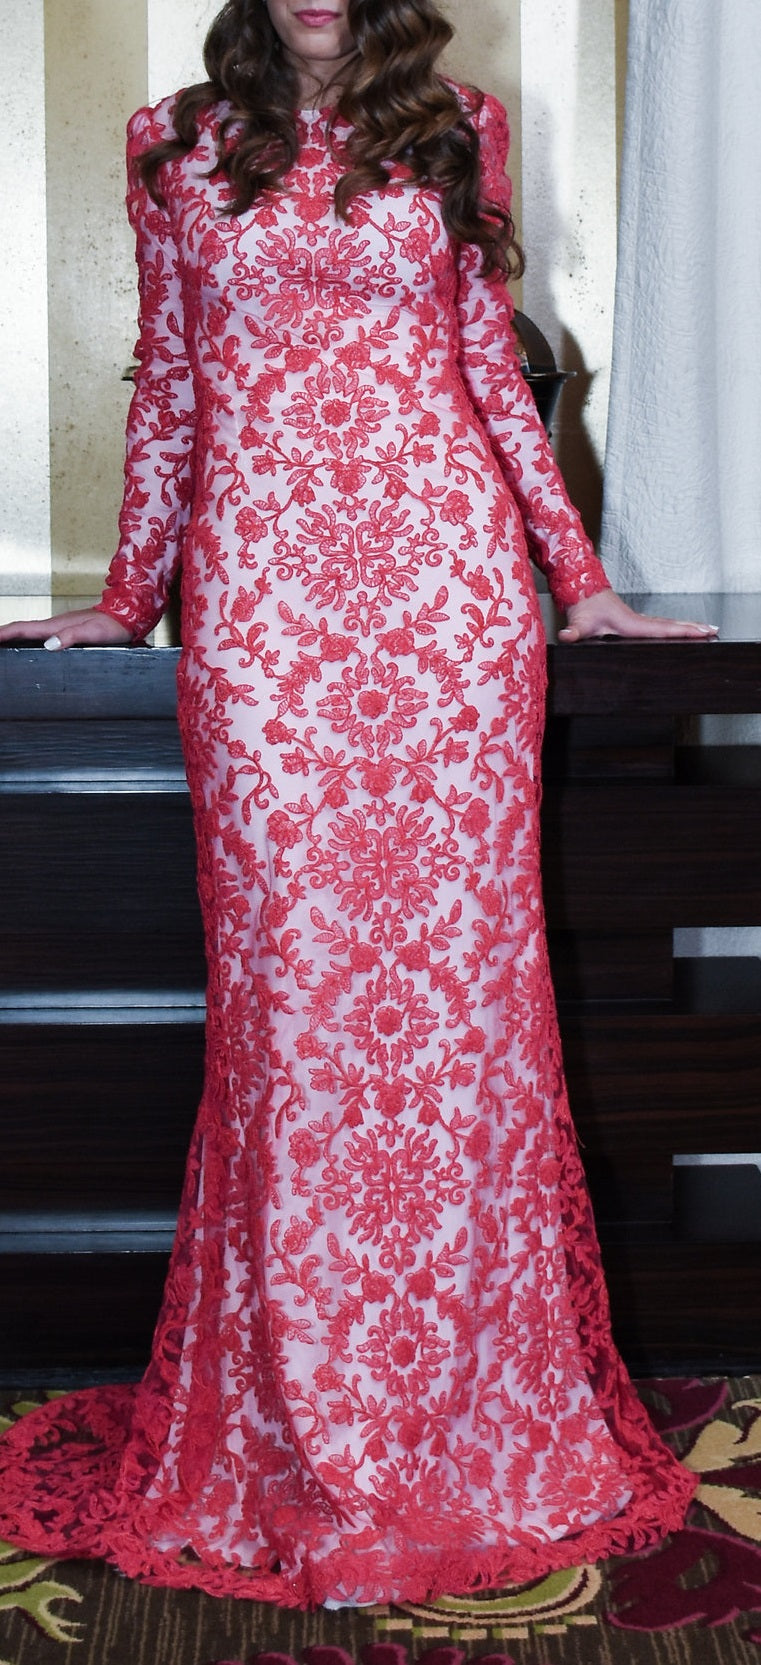 Illusion Embroidery Column Dress